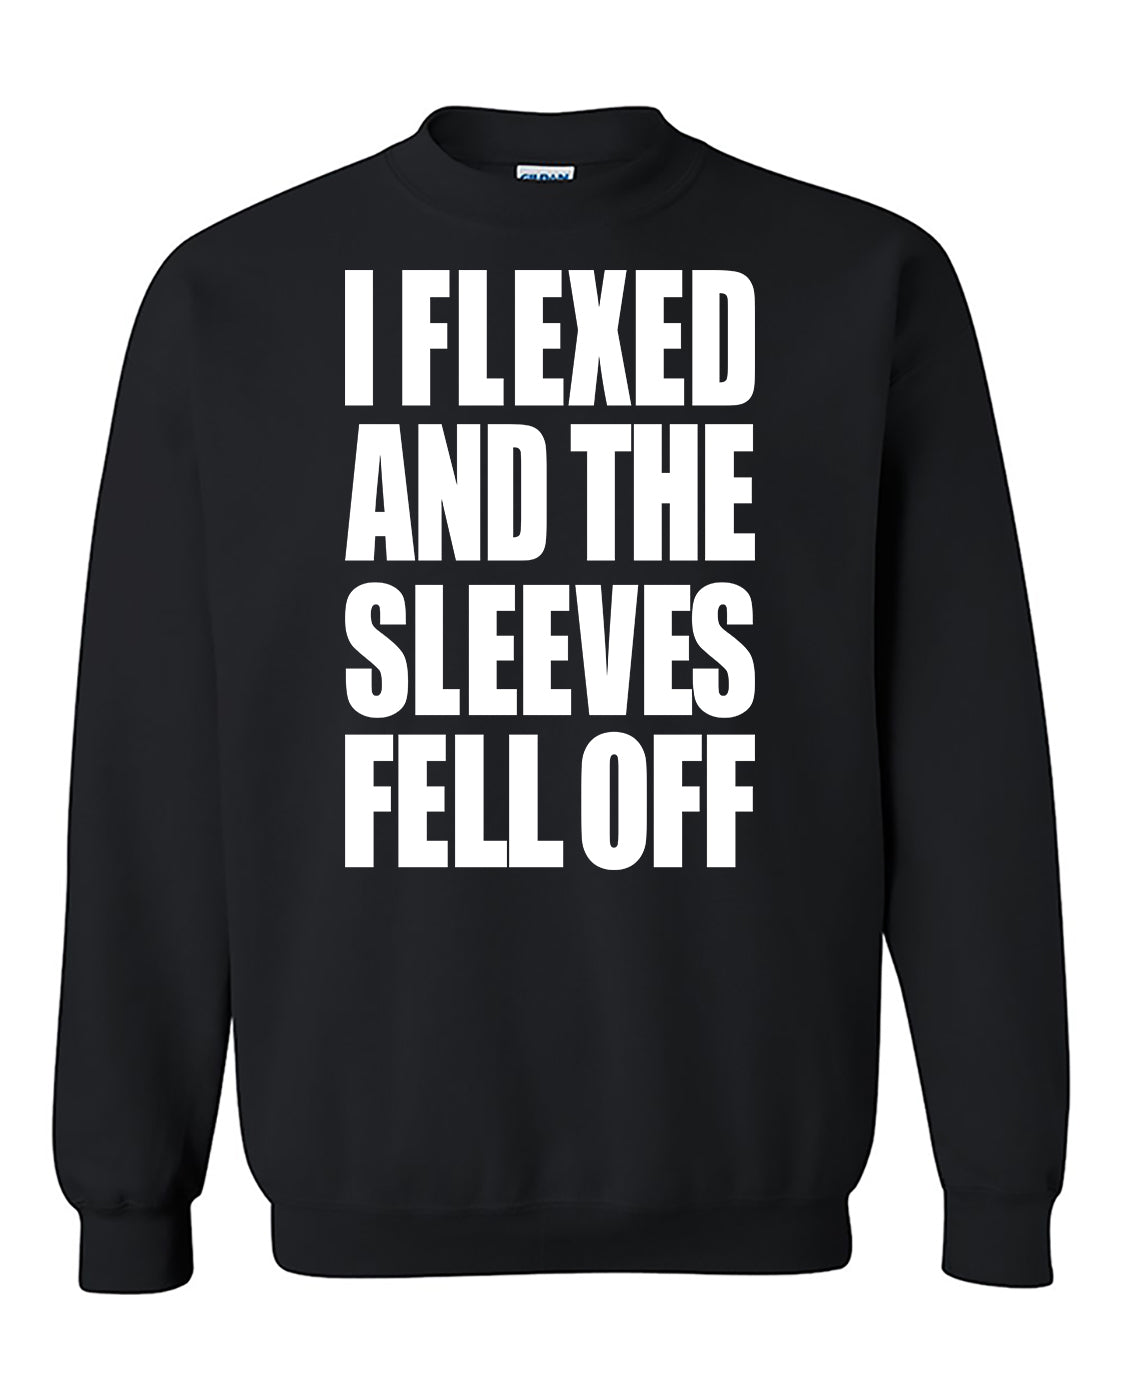 I Flexed And The Sleeves Fell Off Funny Gym Workout Crewneck Sweater